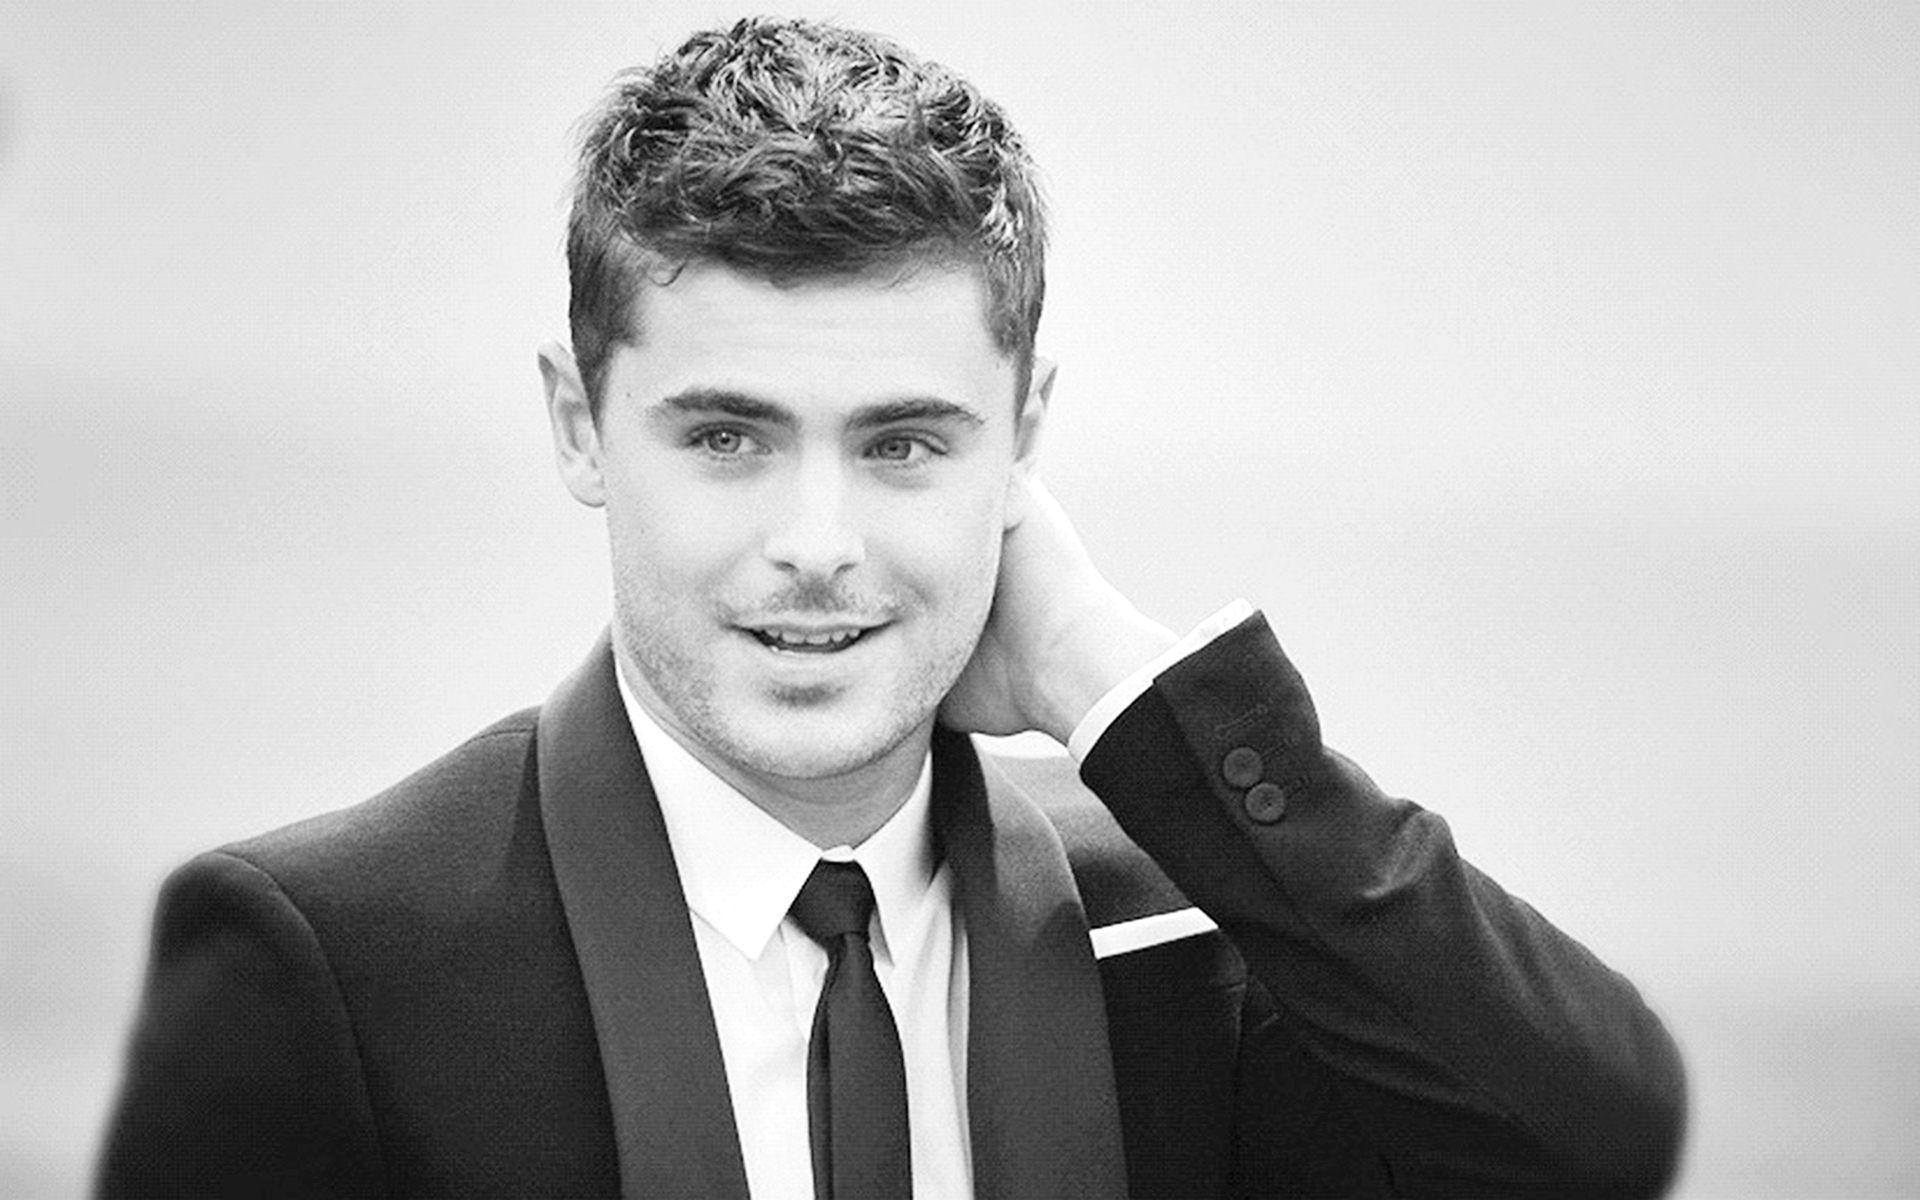 Zac efron wallpaper black white free download hd wallpapers and